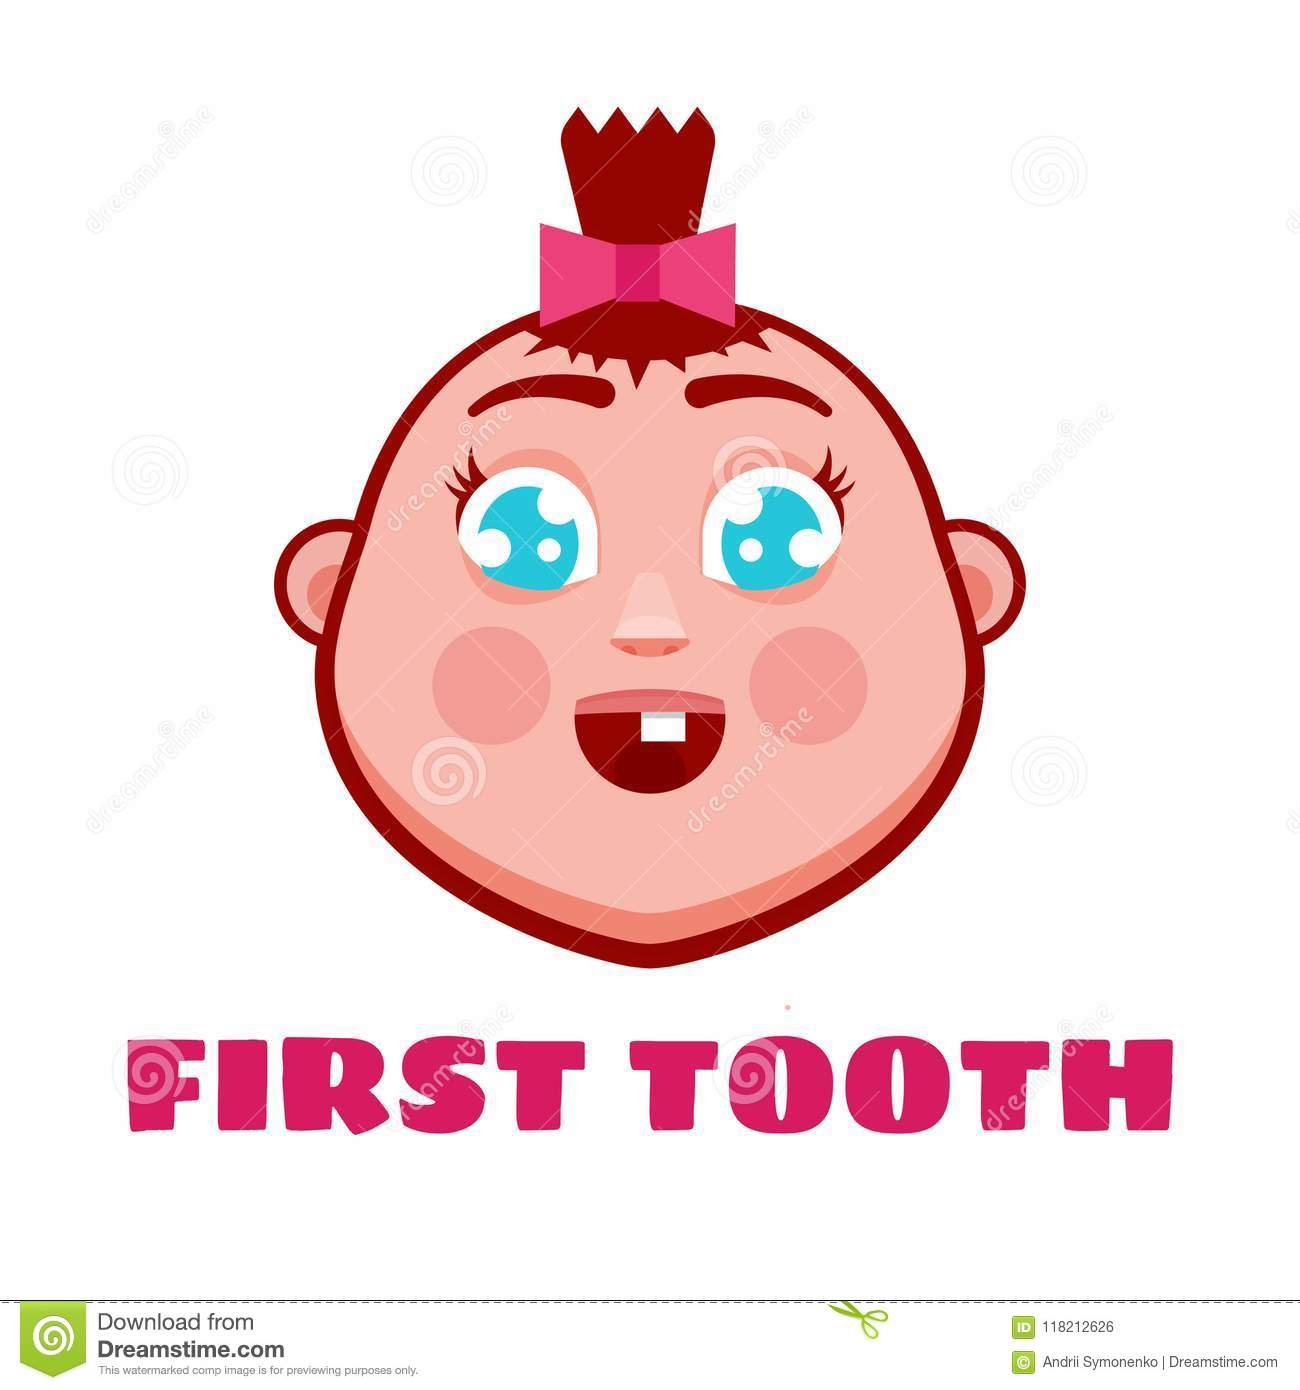 First tooth greetings card cartoon cute baby stock vector first tooth greetings card cartoon cute baby m4hsunfo